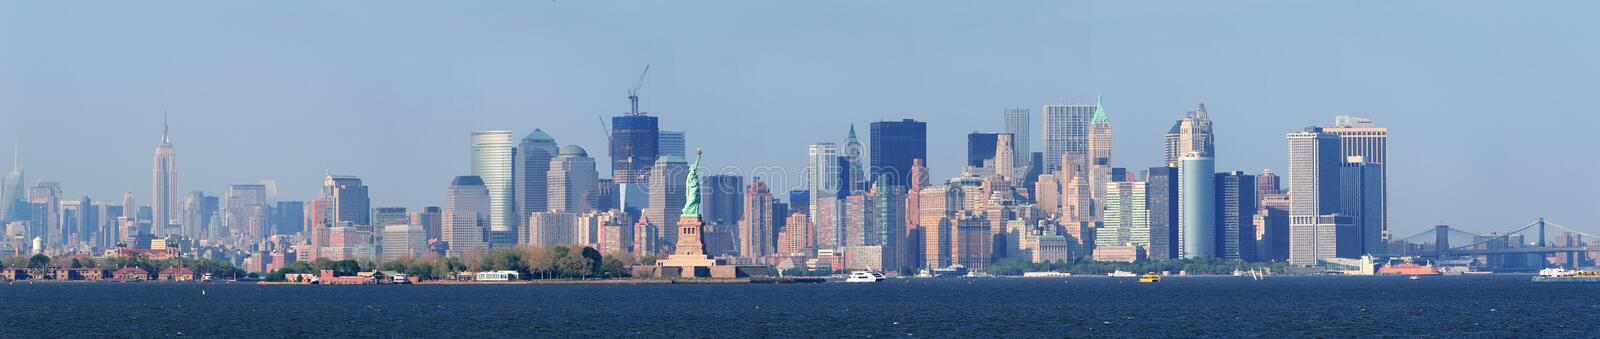 Download New York City Lower Manhattan Skyline Stock Photo - Image of famous, exterior: 23793342